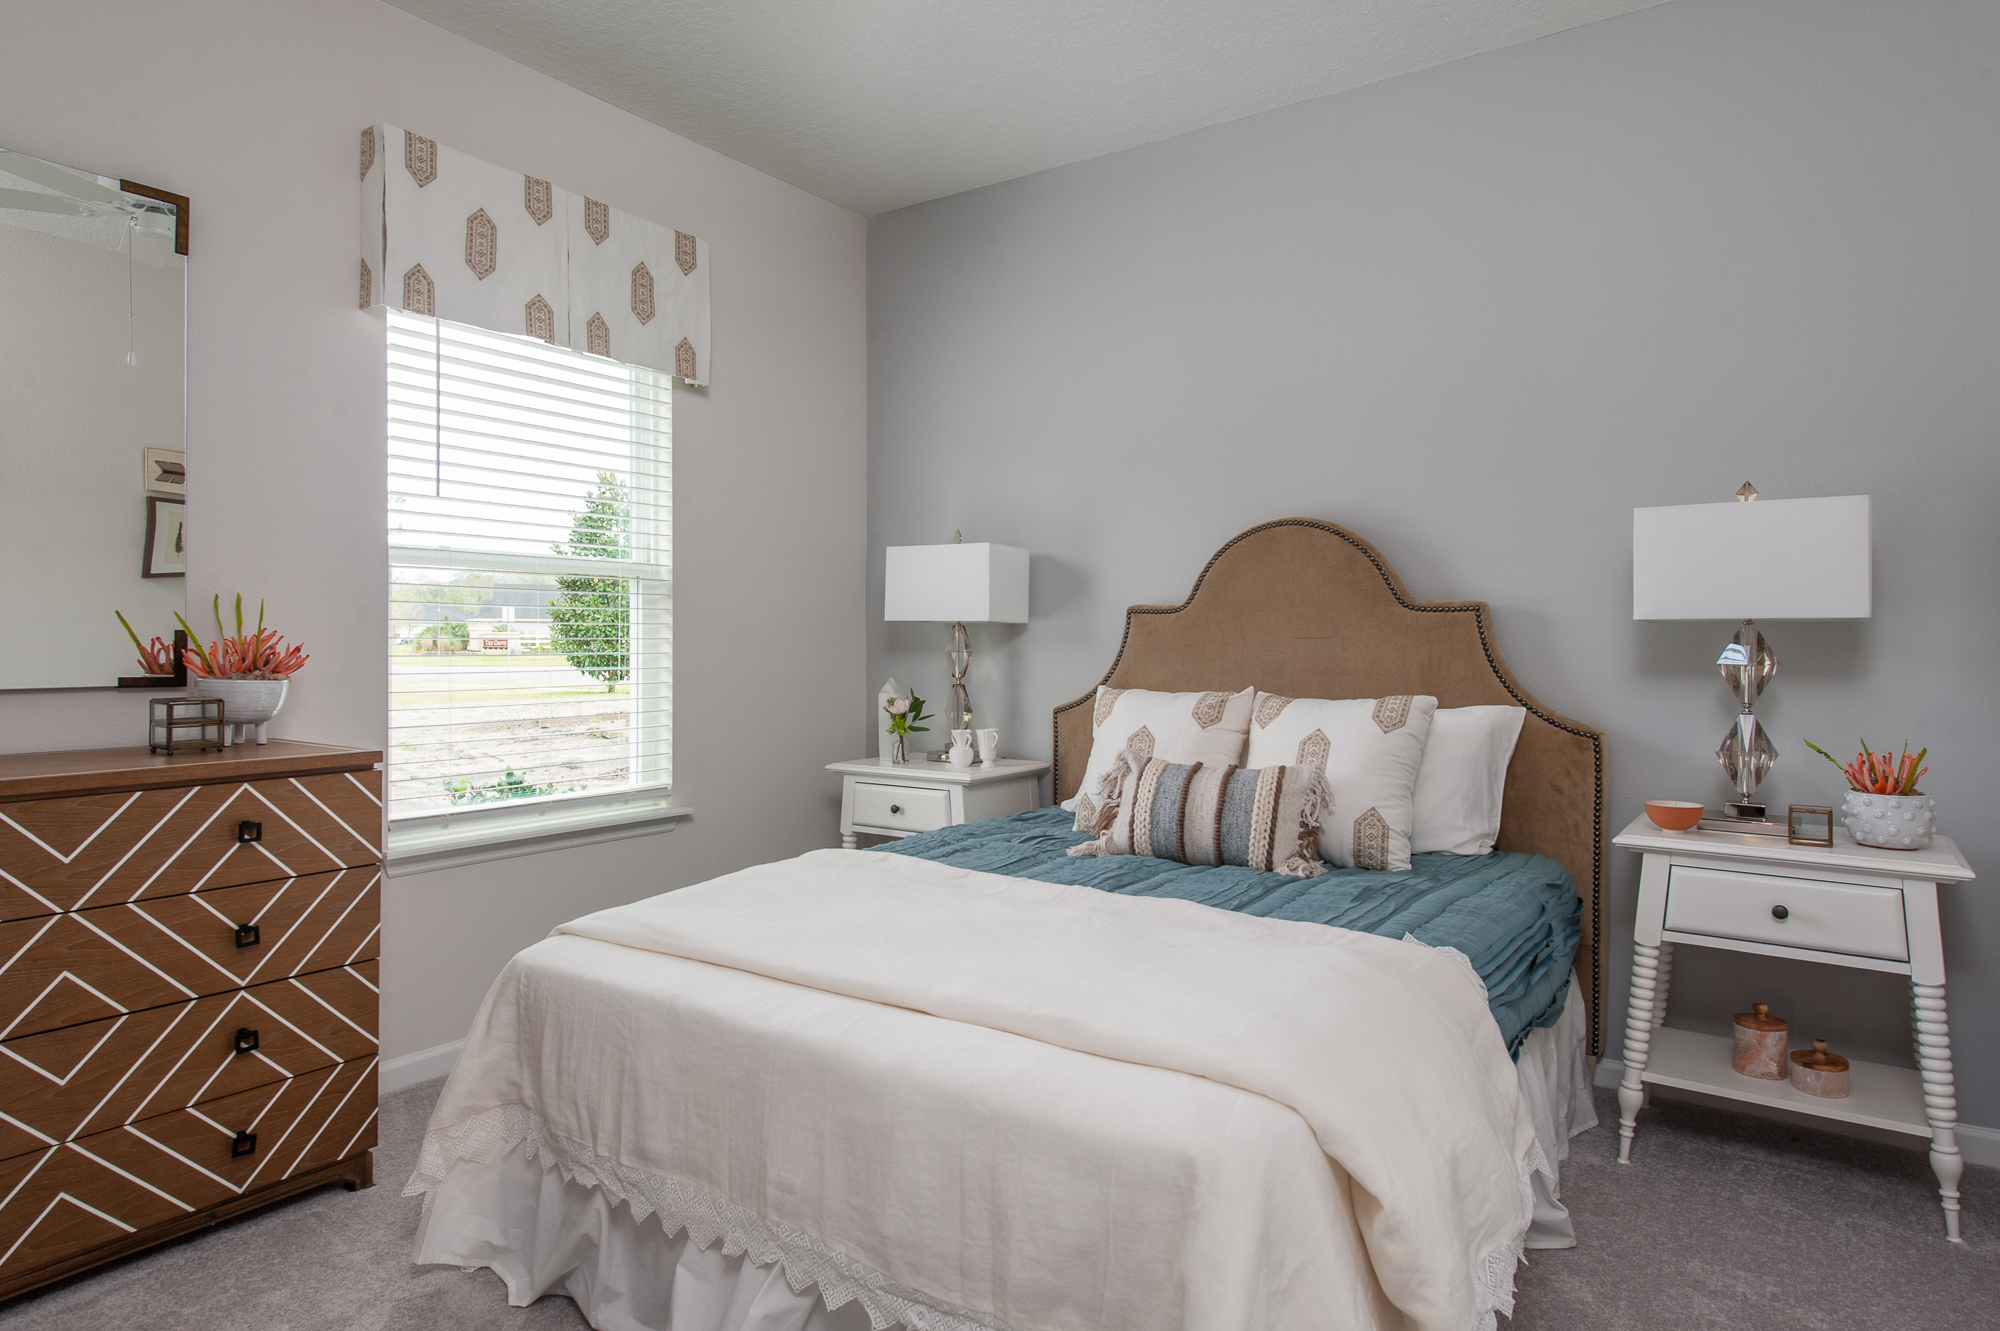 Micamy Design Studio_Model Home_Interior Design_Orchard Cove_Modern Coastal_Rowe_Riverside_Gabby_Boho.jpg